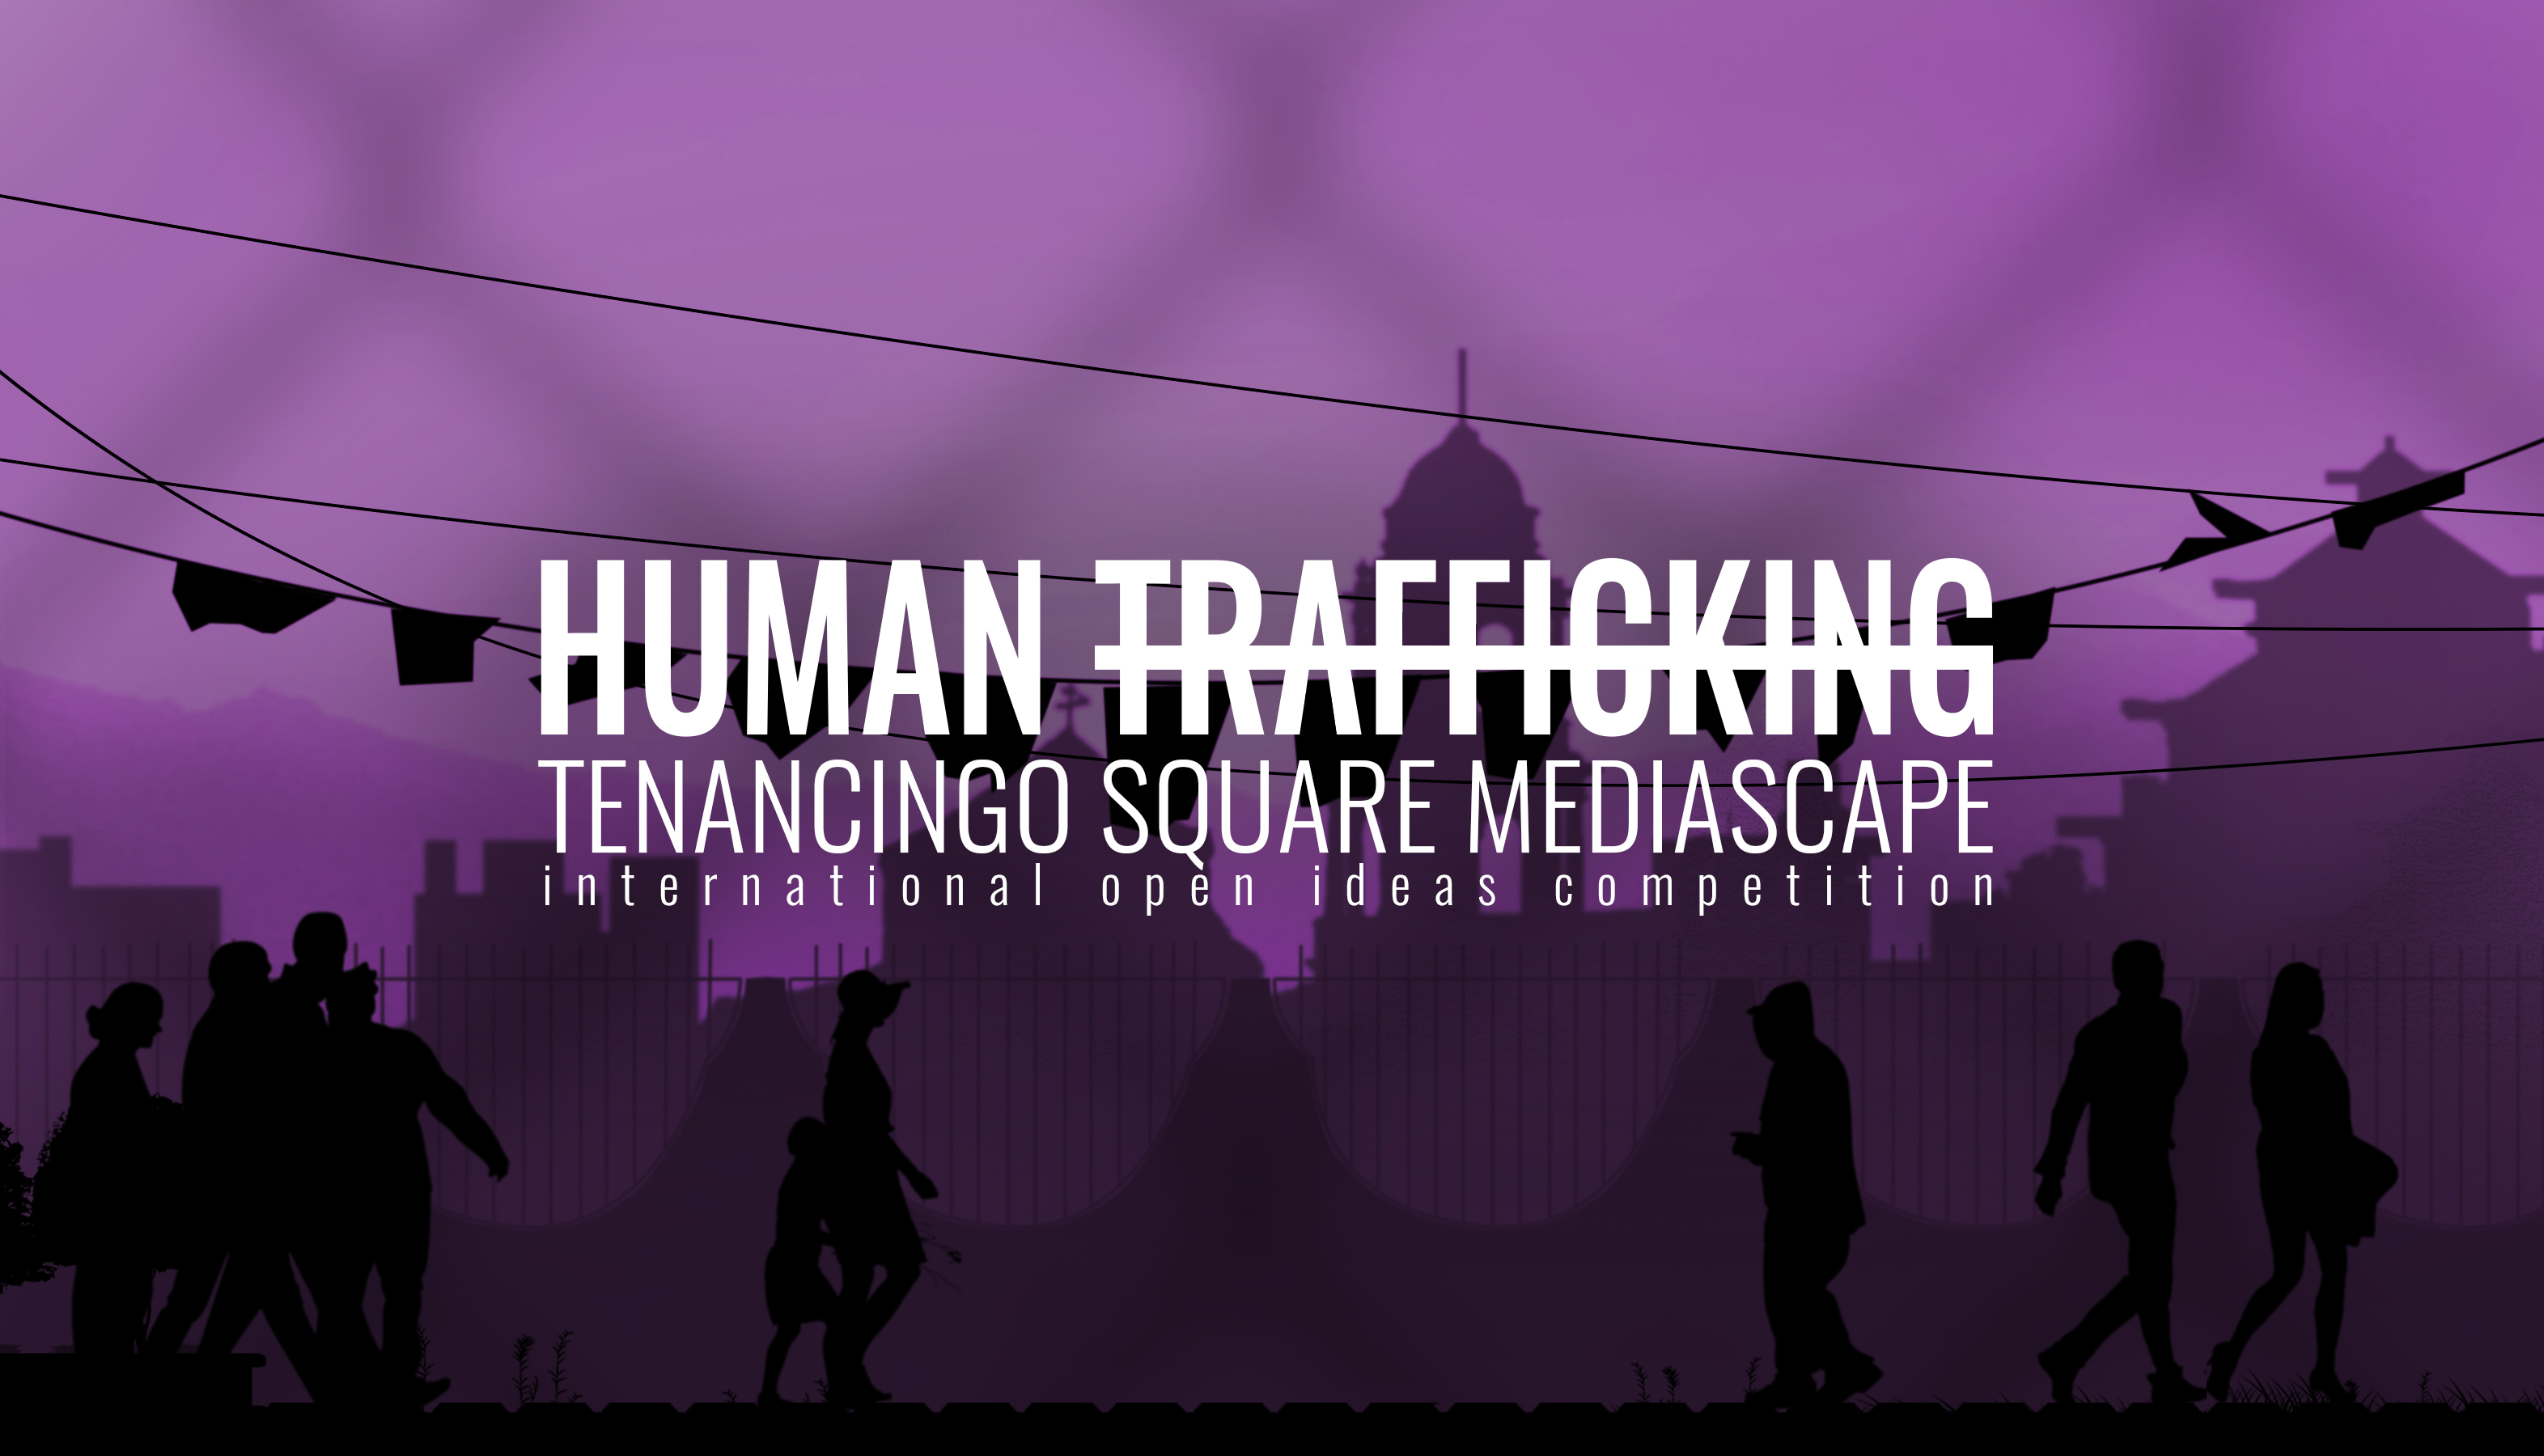 HUMAN TRAFFICKING - Tenancingo Square Mediascape competition